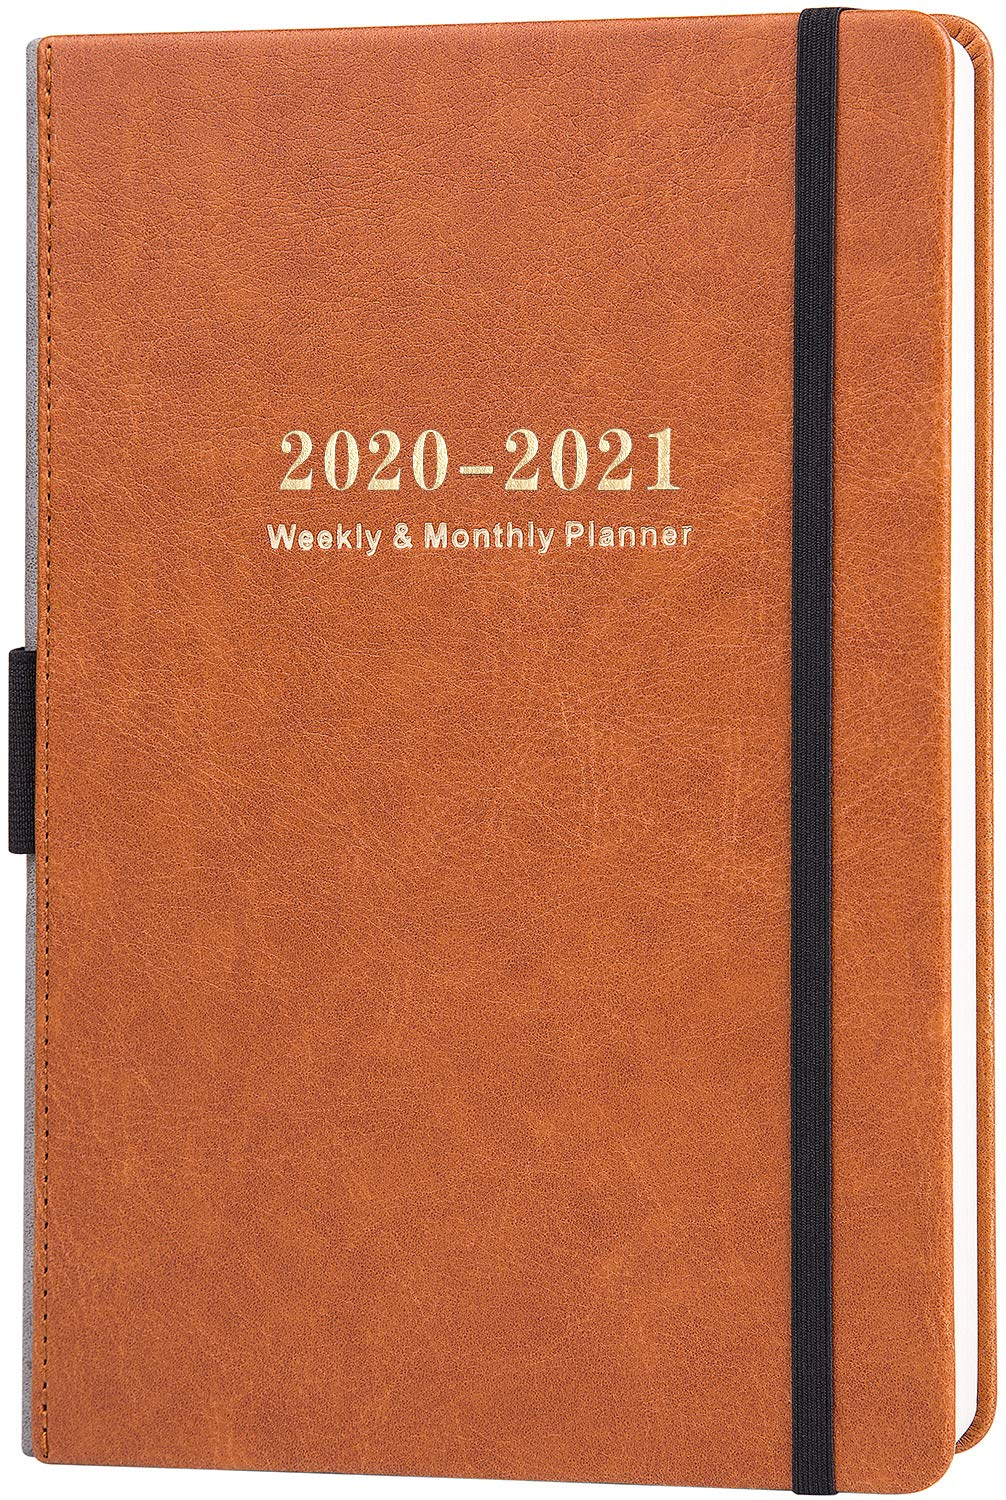 """2020-2021 Planner - Academic Planner, Jul 2020 - Jun 2021, Weekly & Monthly, 5.75"""" X 8.25"""", Calendar Stickers, A5 Premium Thicker Paper with Pen Holder, Inner Pocket and 88 Notes Pages"""